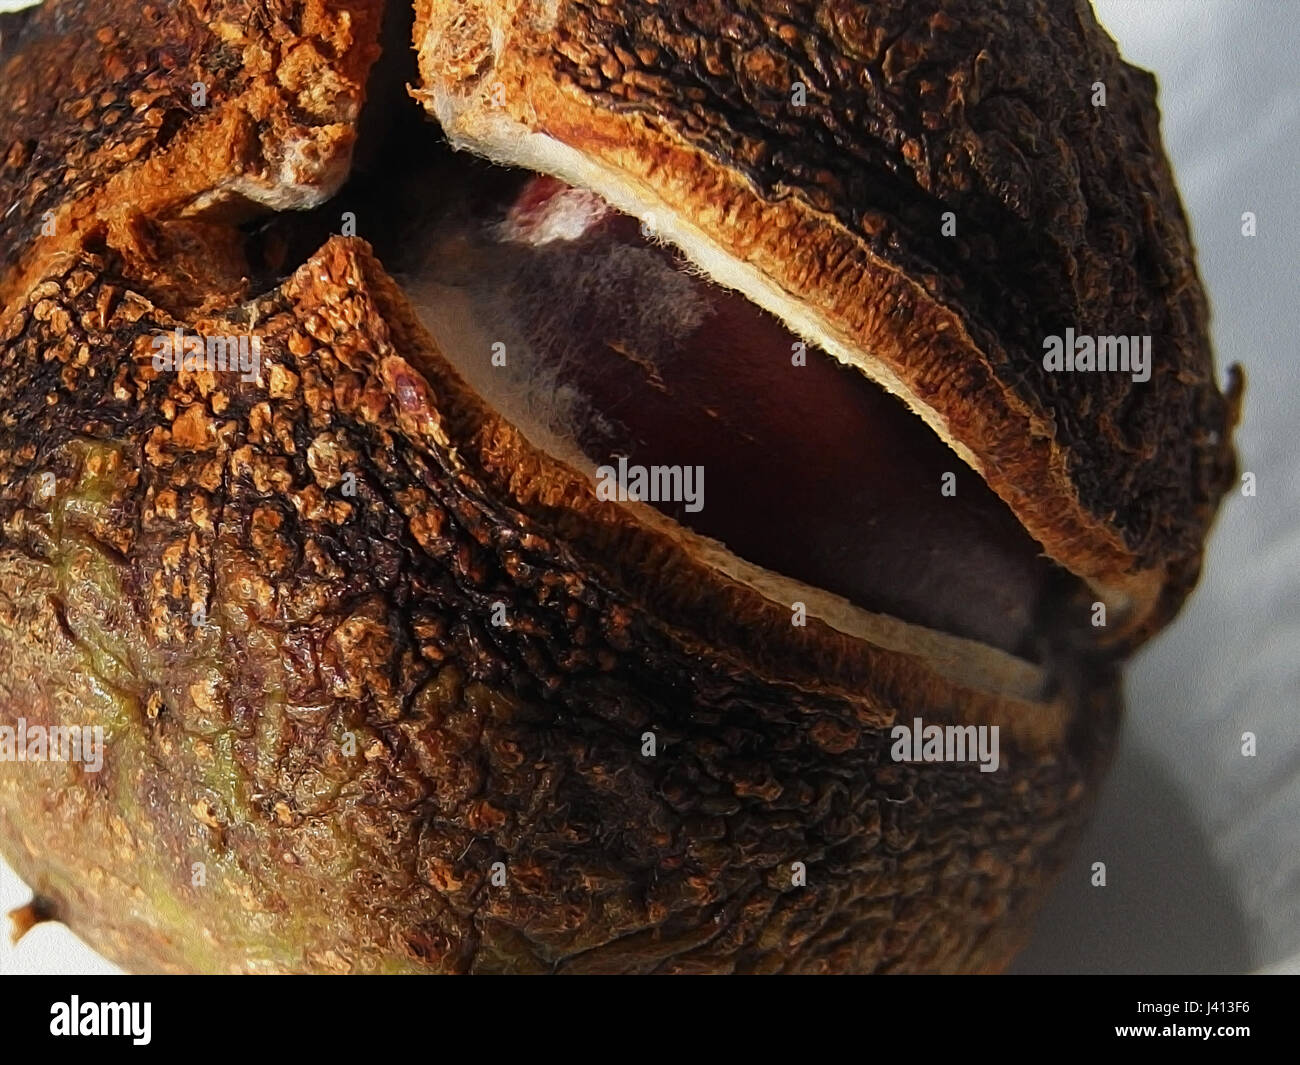 Horse Chestnut tree fruit opening with seed inside - Stock Image